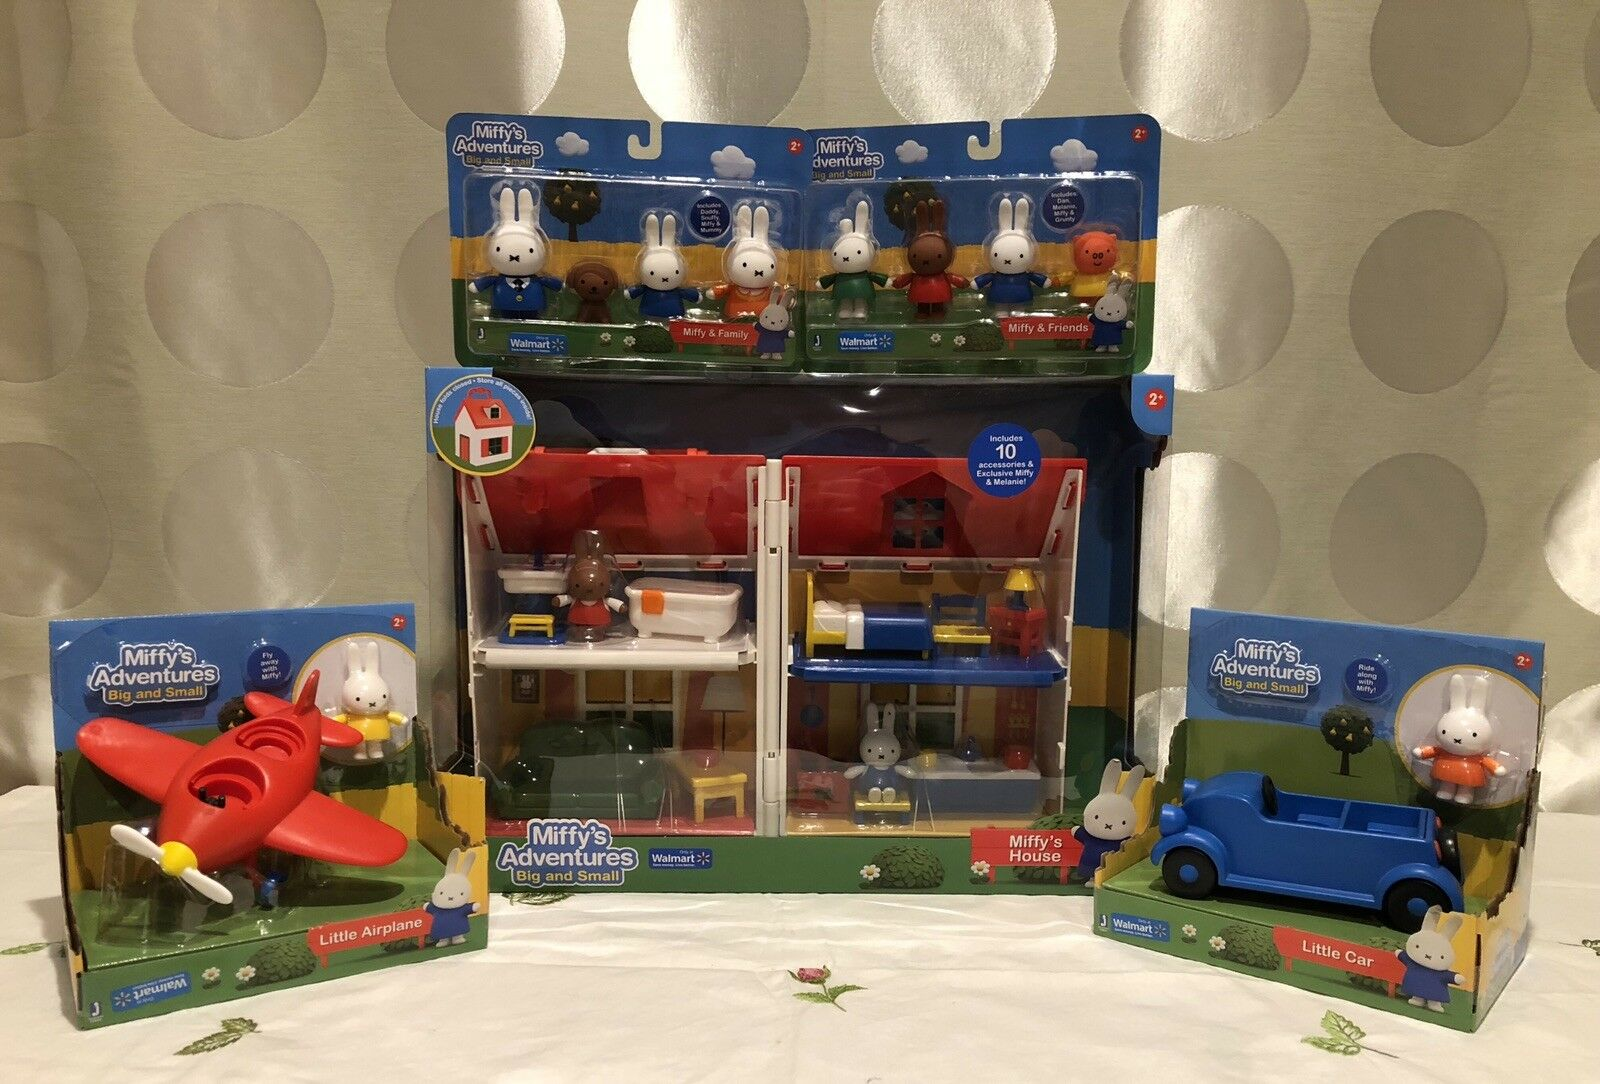 Miffy's Adventures - Miffy's House and Other Playsets